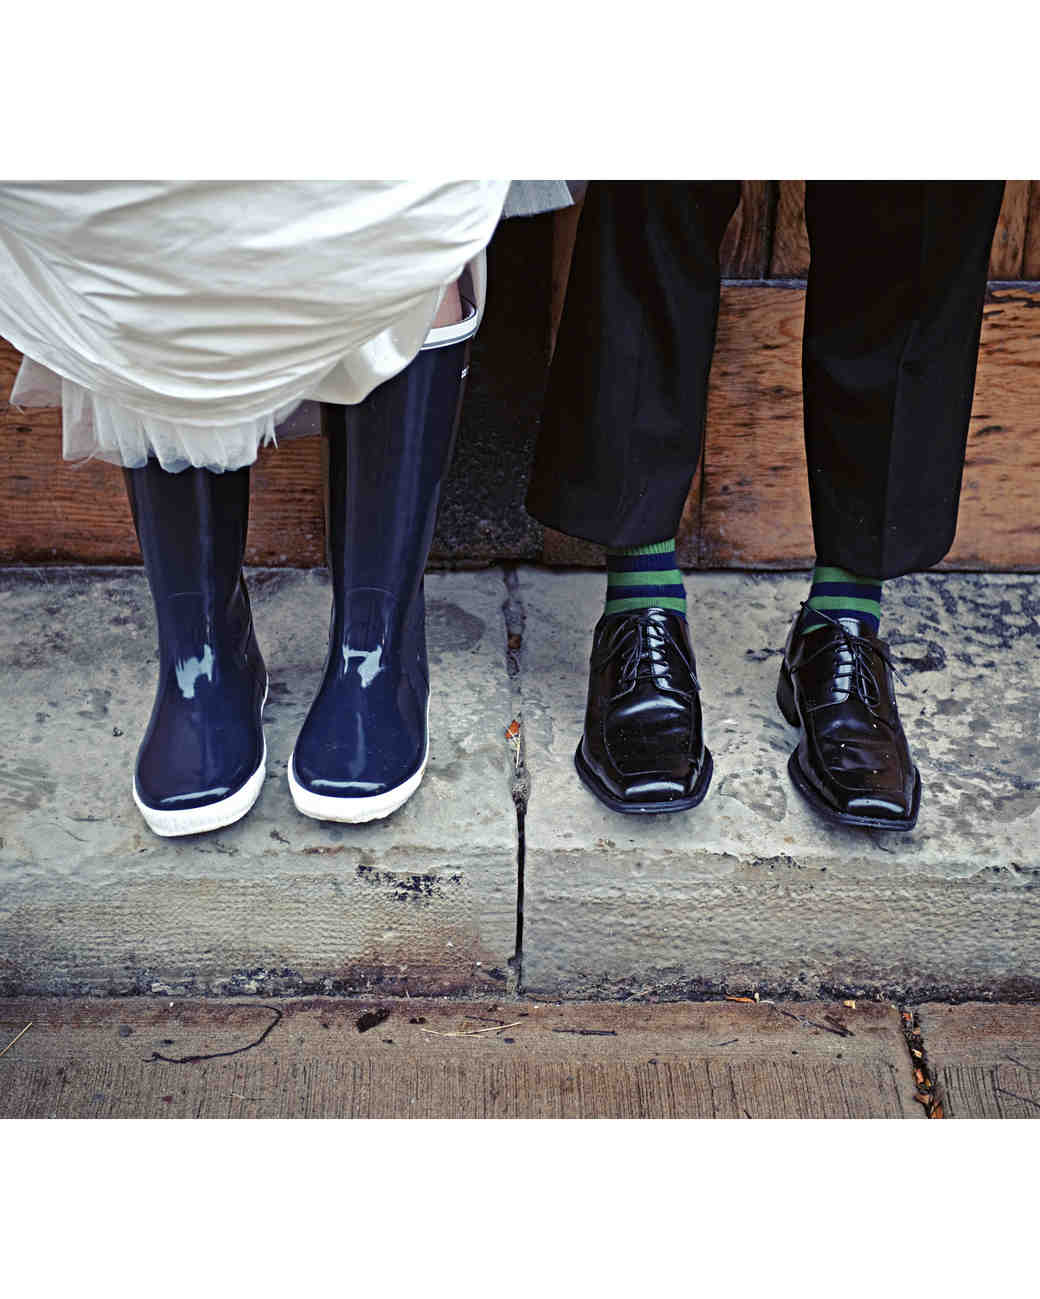 rainy wedding couple rain boots and shoes